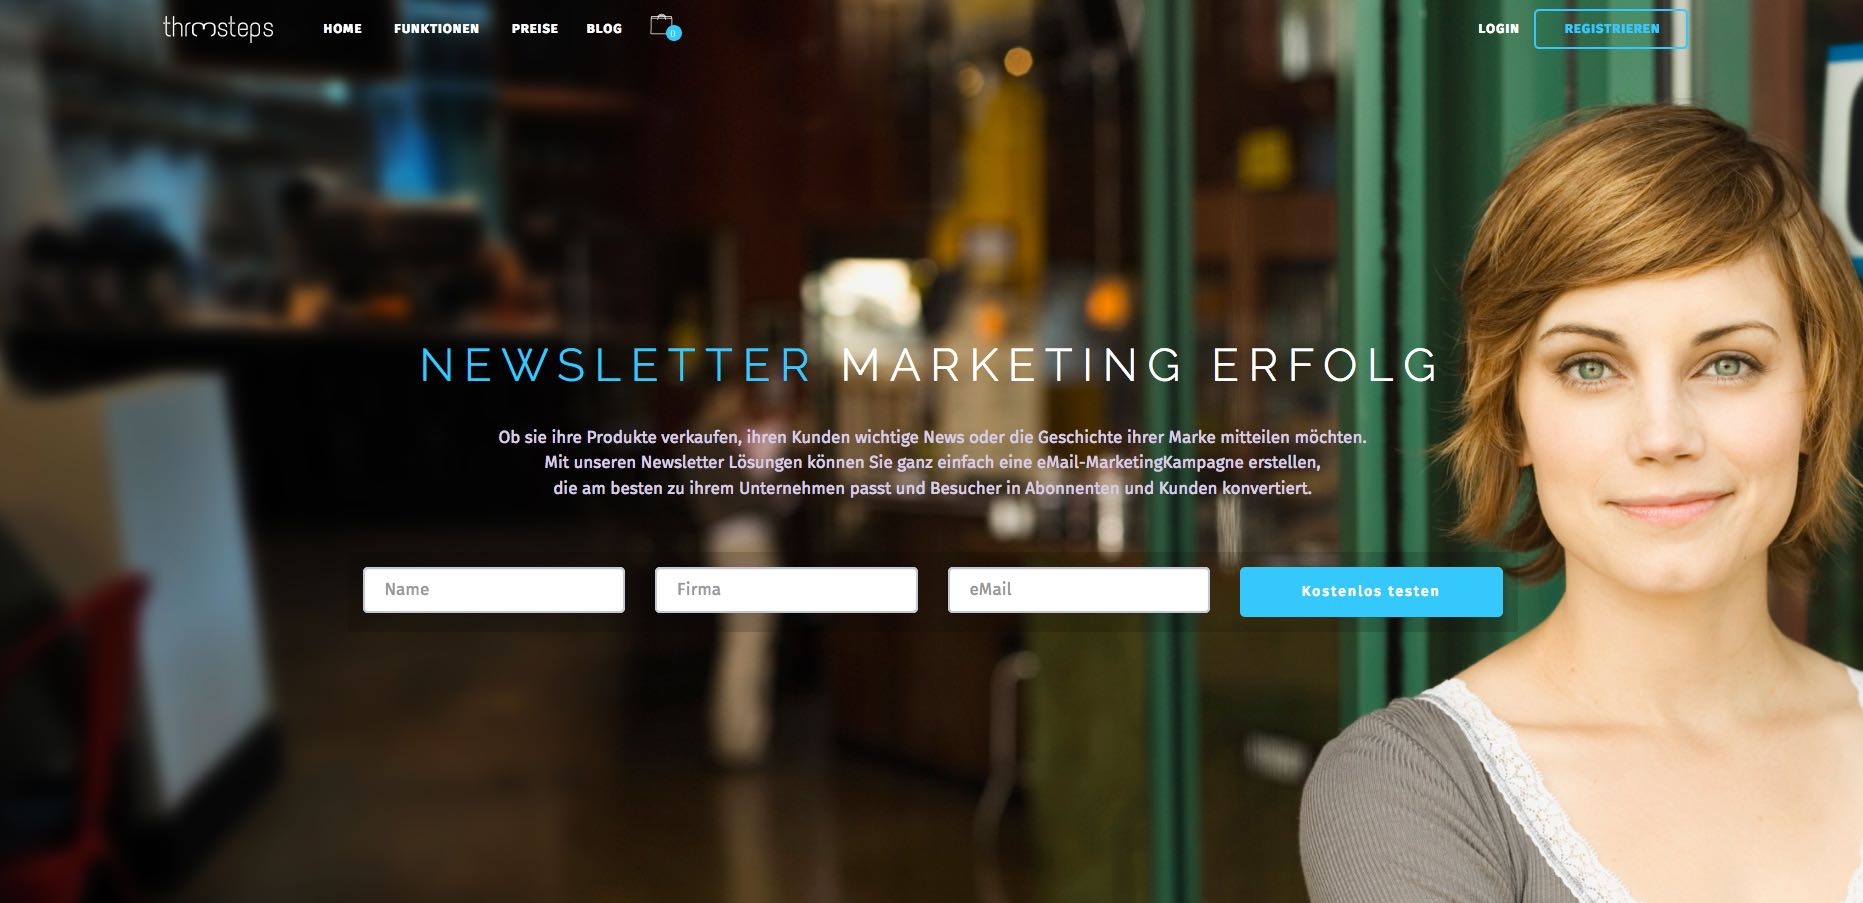 threesteps Newsletter Marketing